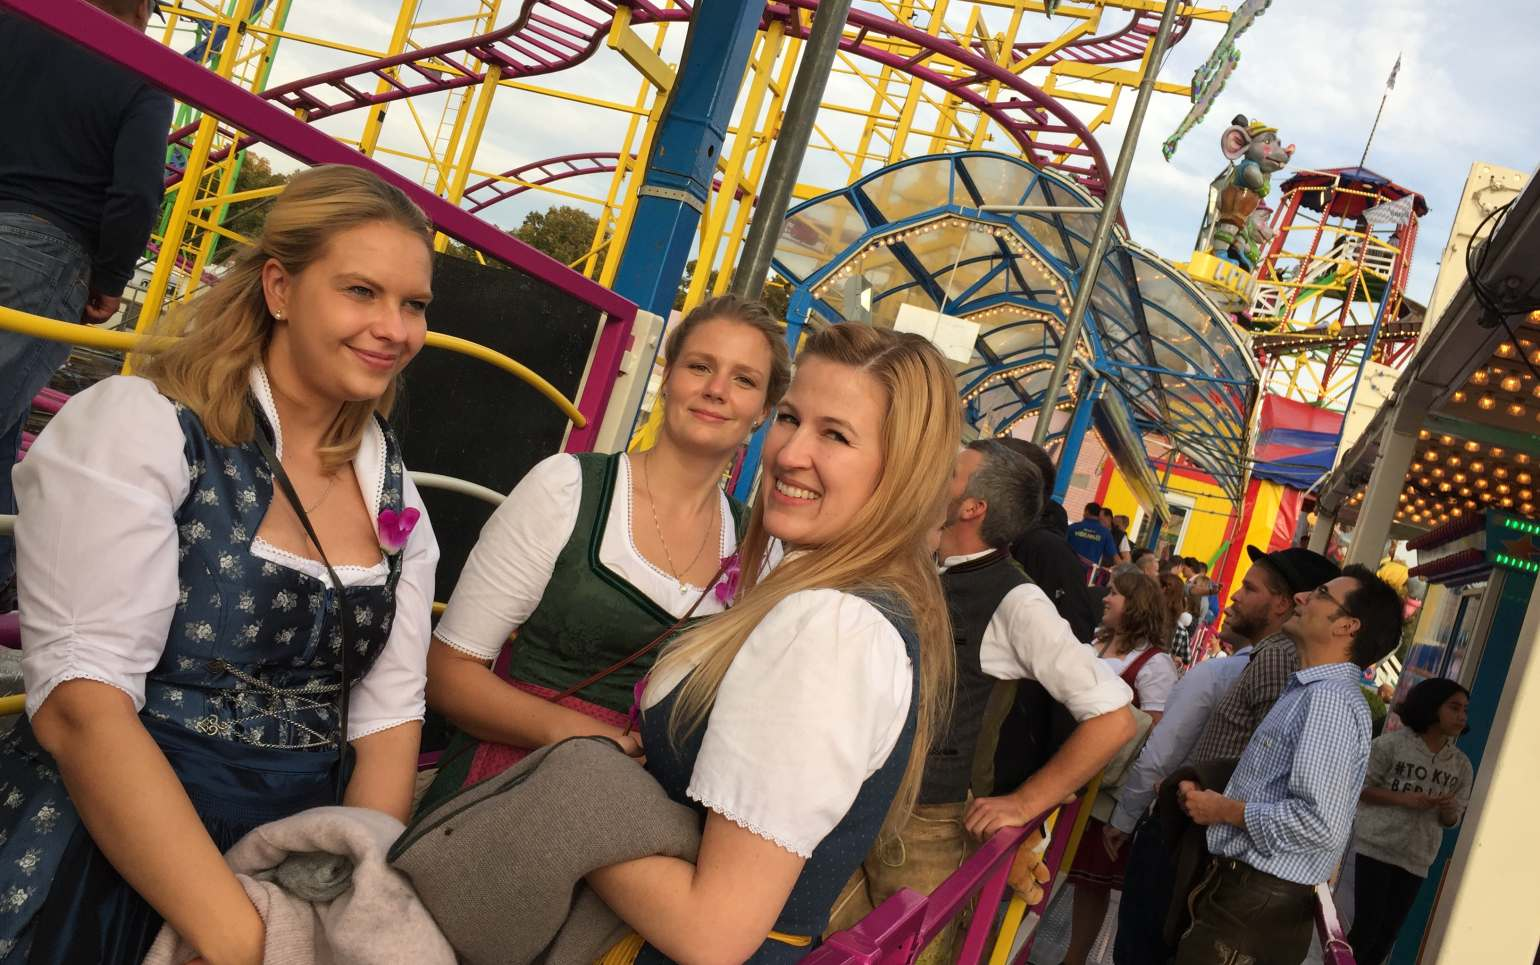 fritsch-tschaidse_architekten_Wiesn_05